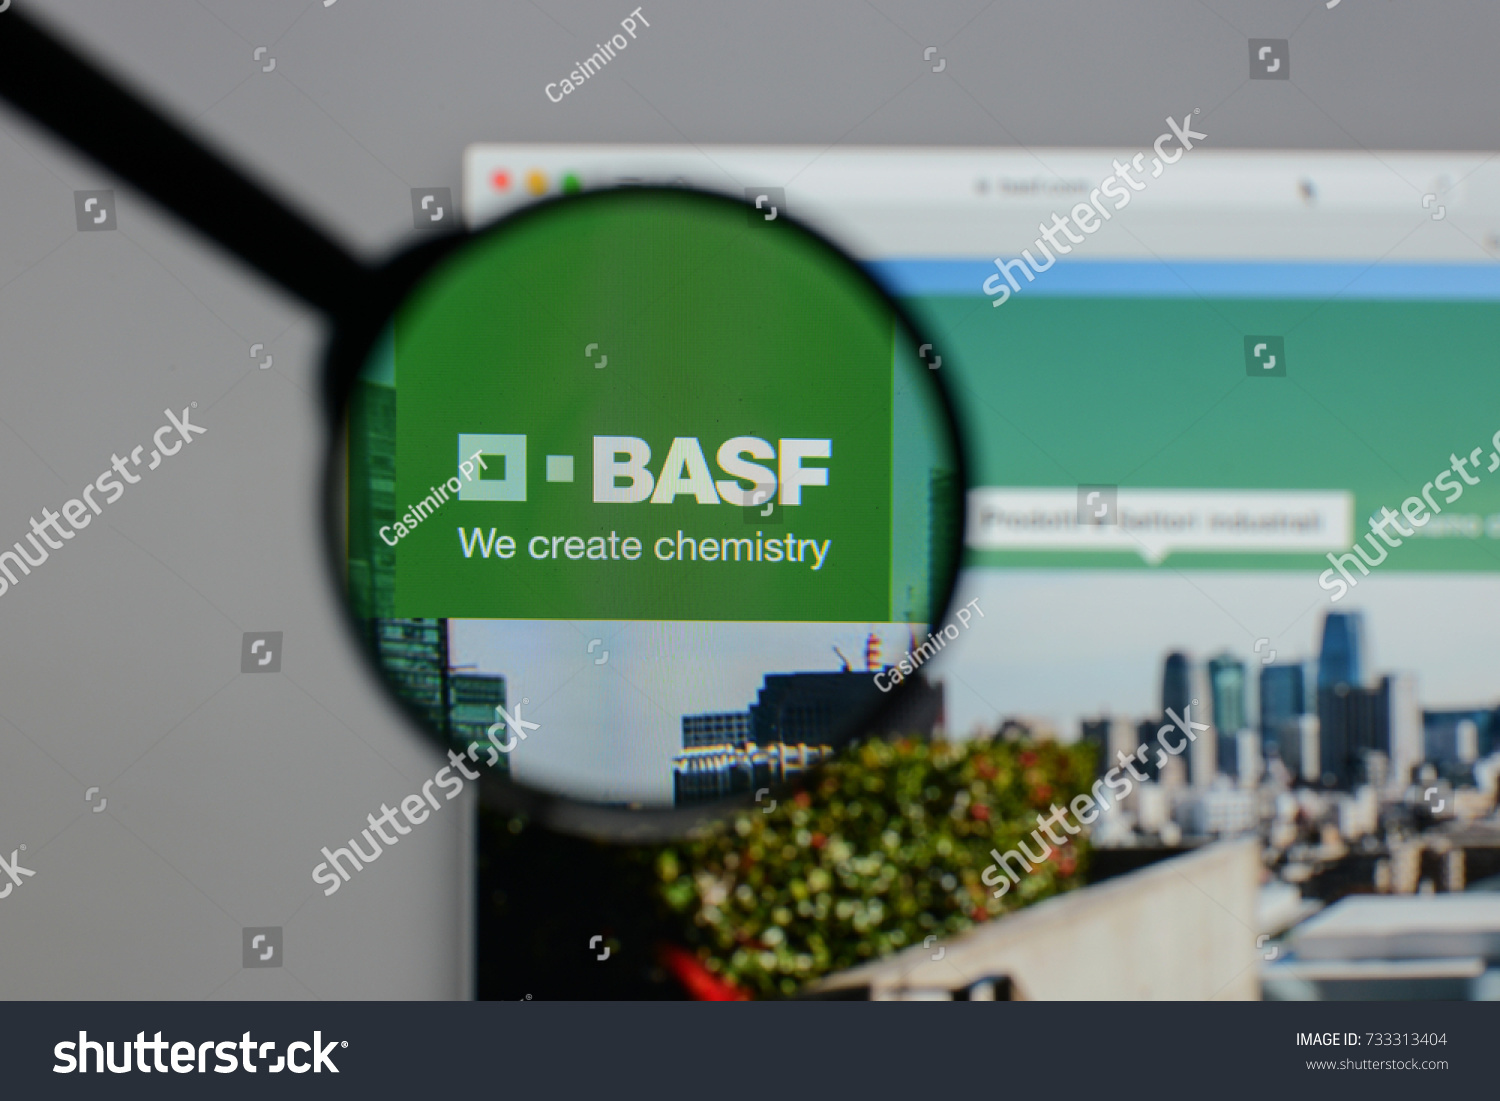 Milan Italy August 10 2017 Basf Stock Photo Royalty Free 733313404